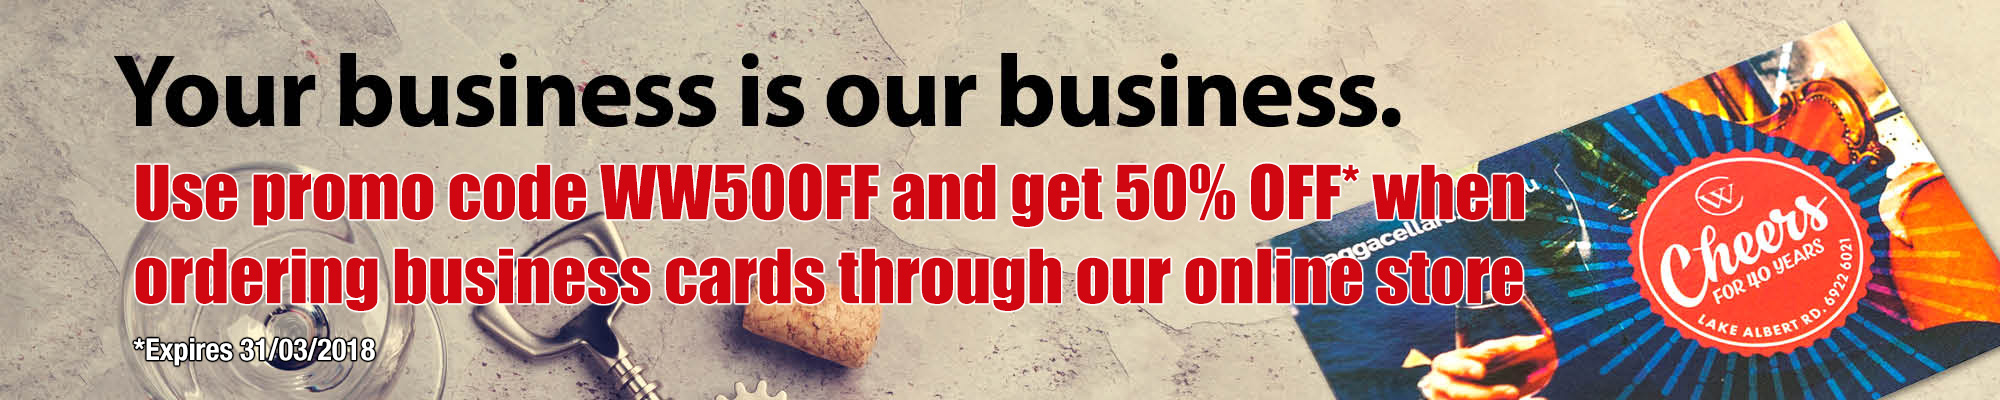 Use WW50OFF to get 50% off business cards